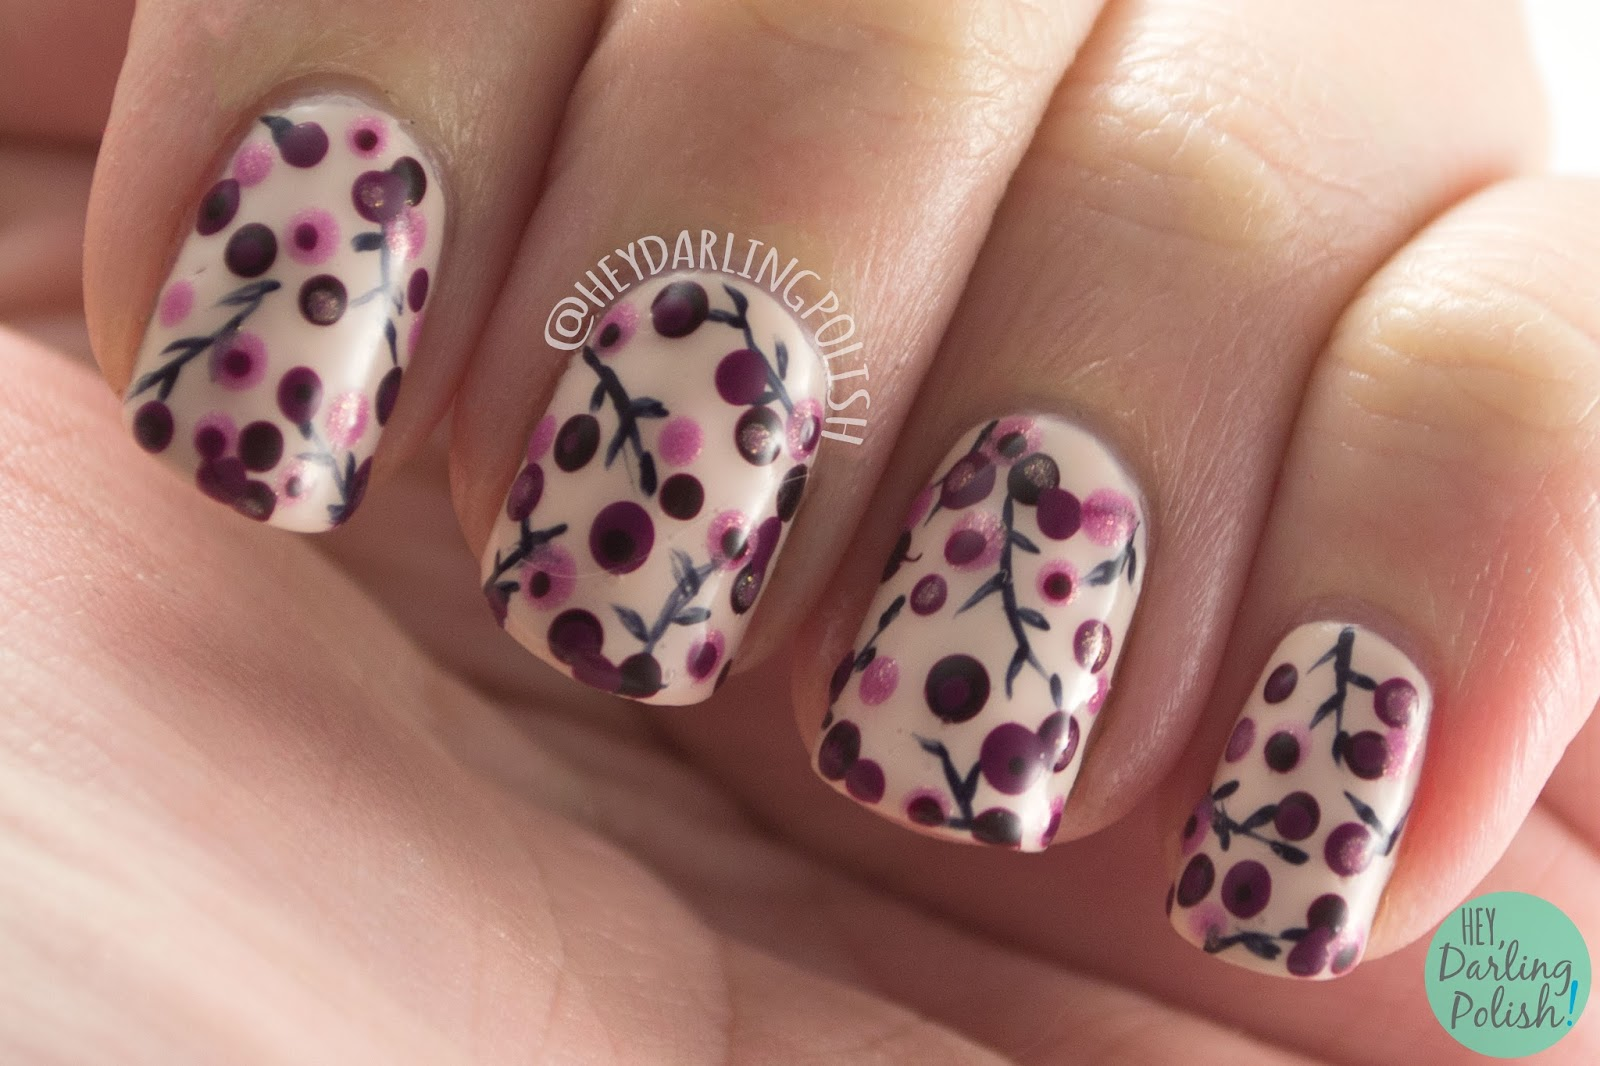 nails, nail art, nail polish, flowers, floral, hey darling polish, polka dots, dotting tools, 31 day challenge 2015,